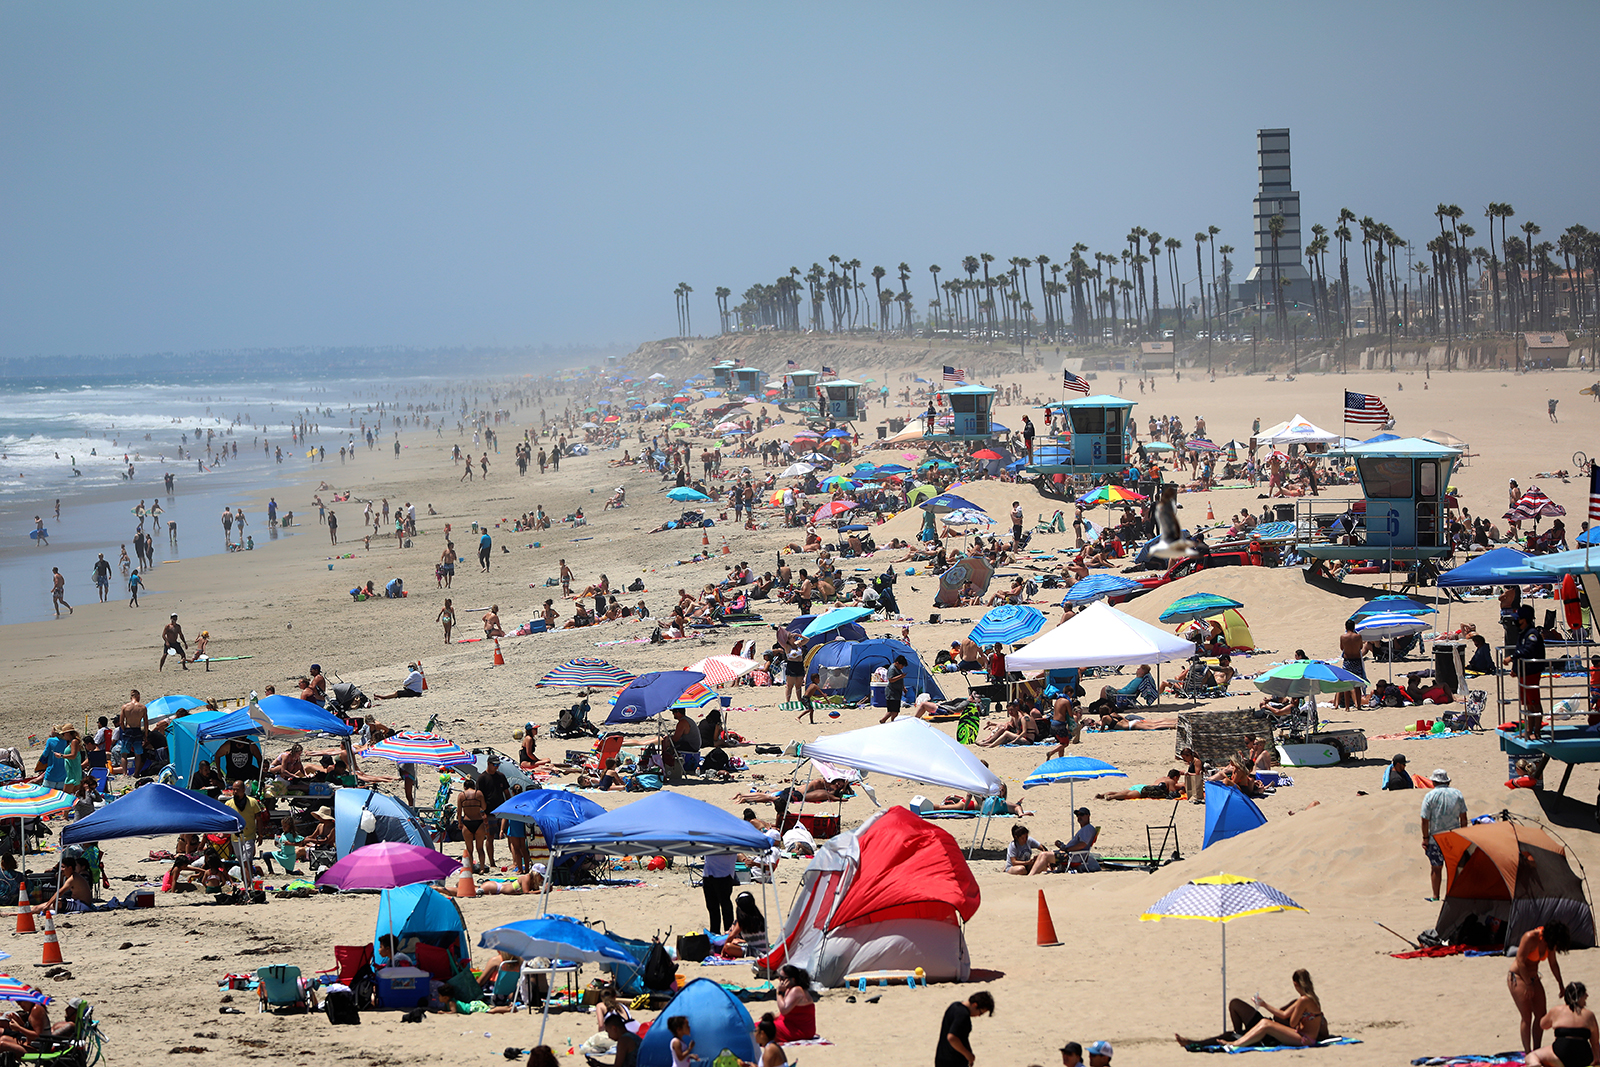 People gather at the beach on July 3, in Huntington Beach, California.